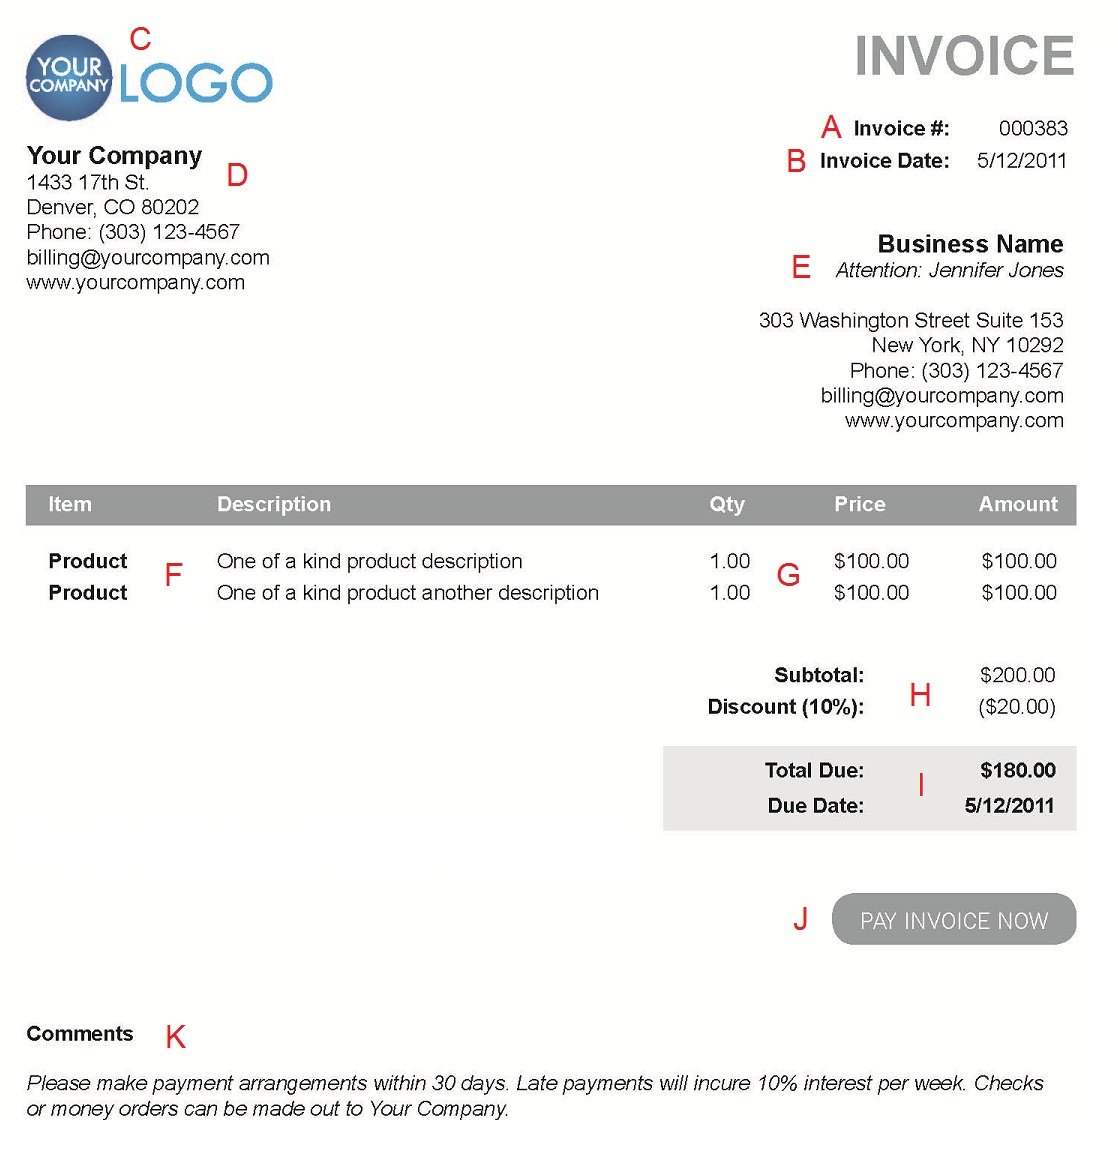 Atvingus  Sweet The  Different Sections Of An Electronic Payment Invoice With Exciting A  With Attractive Receipt For Crab Cakes Also How To Write Rent Receipt In Addition Sunglass Hut Receipt And Security Deposit Return Receipt As Well As Digitize Receipts Additionally Segregation Of Duties Cash Receipts From Paysimplecom With Atvingus  Exciting The  Different Sections Of An Electronic Payment Invoice With Attractive A  And Sweet Receipt For Crab Cakes Also How To Write Rent Receipt In Addition Sunglass Hut Receipt From Paysimplecom